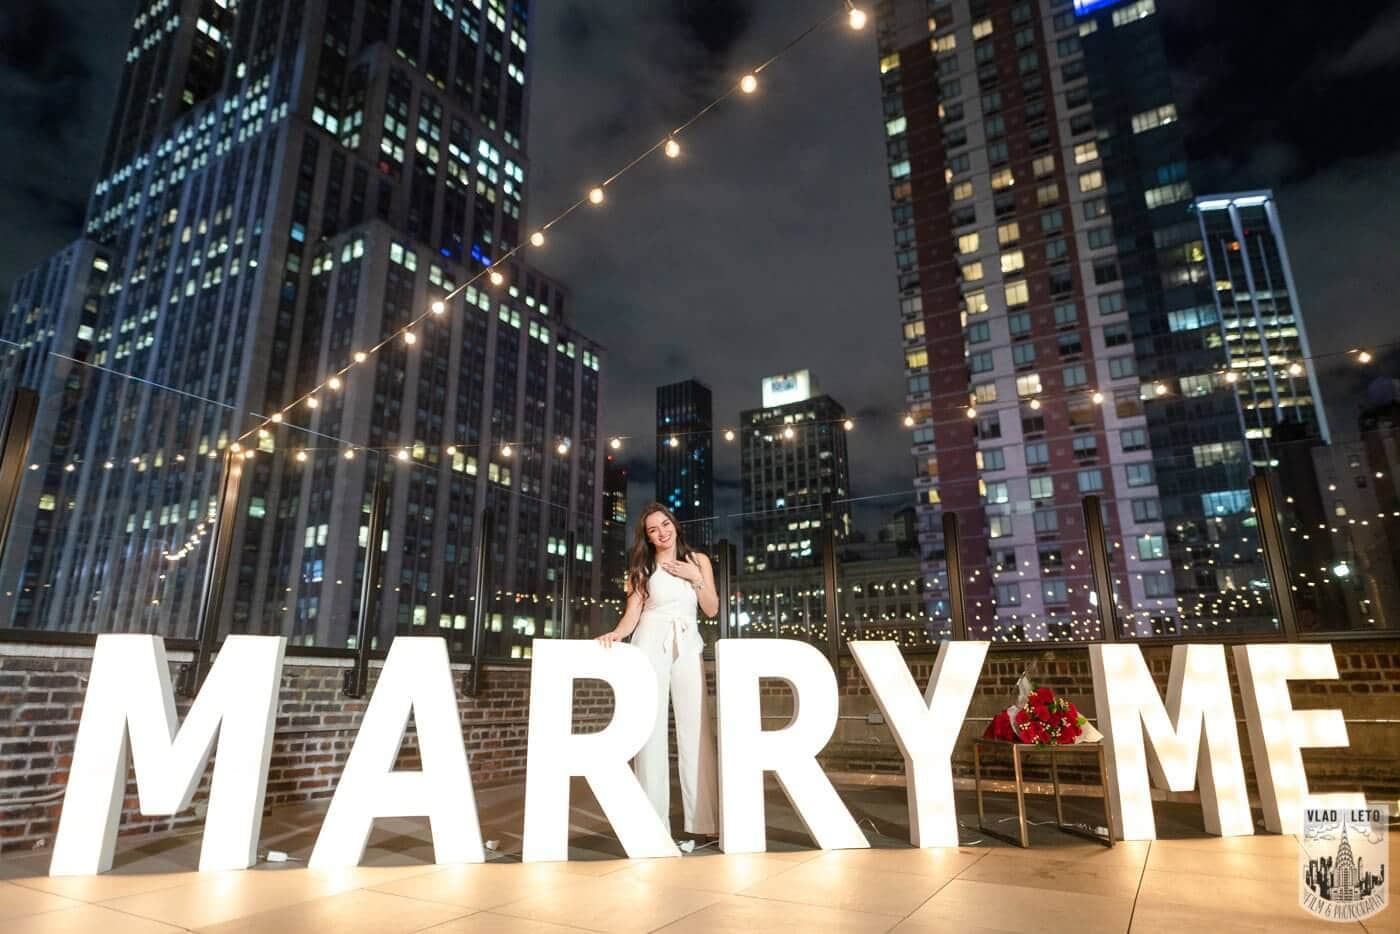 Photo 7 Gigantic Marry Me Letters Rooftop Proposal | VladLeto